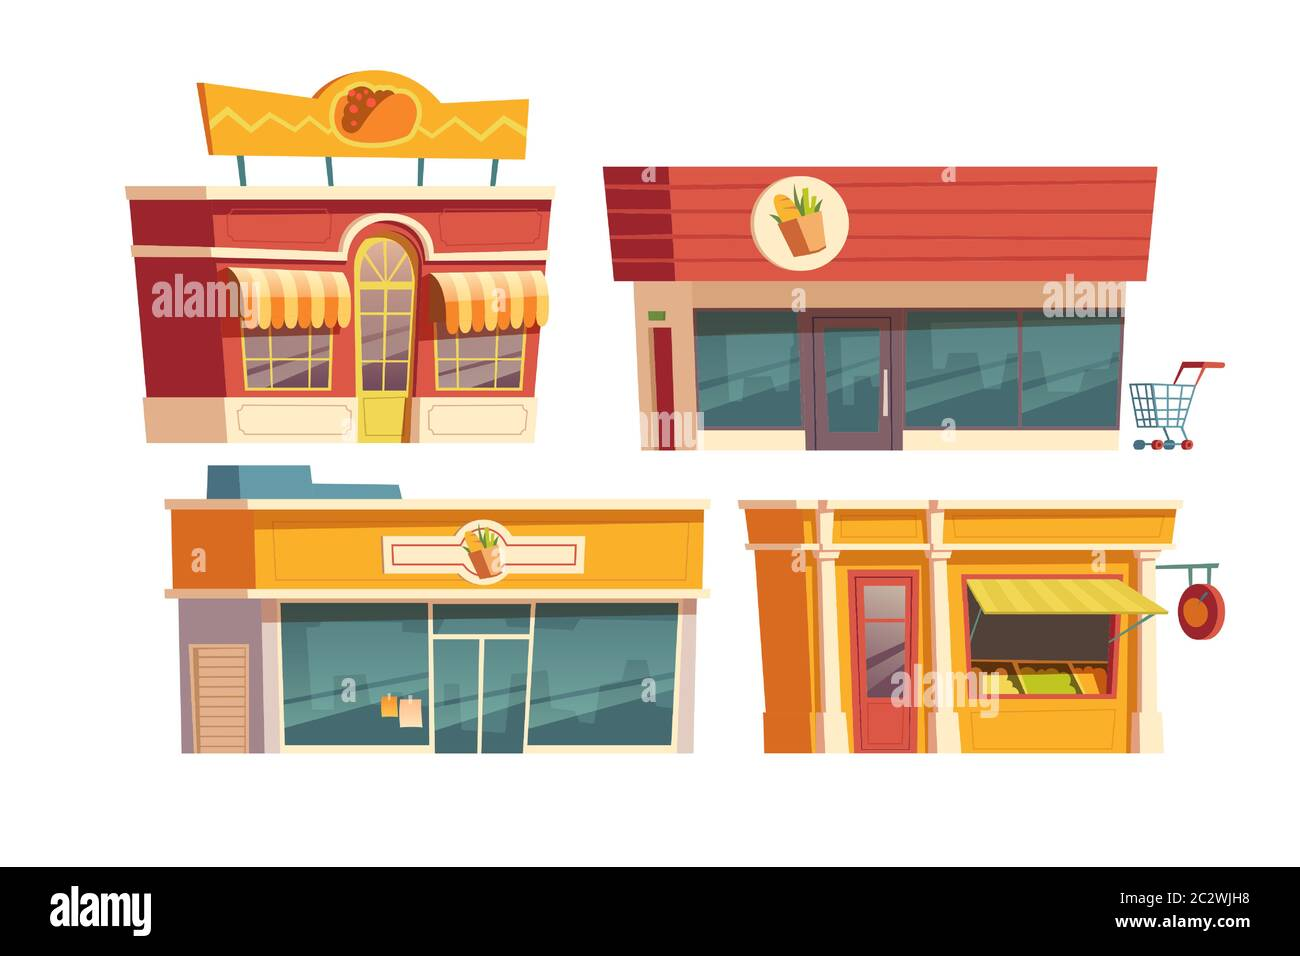 Fast Food Restaurant And Shops Building Cartoon Vector Illustration Facades Of Food Markets And Cafes Or Bistros With Signboards City Small Business Stock Vector Image Art Alamy